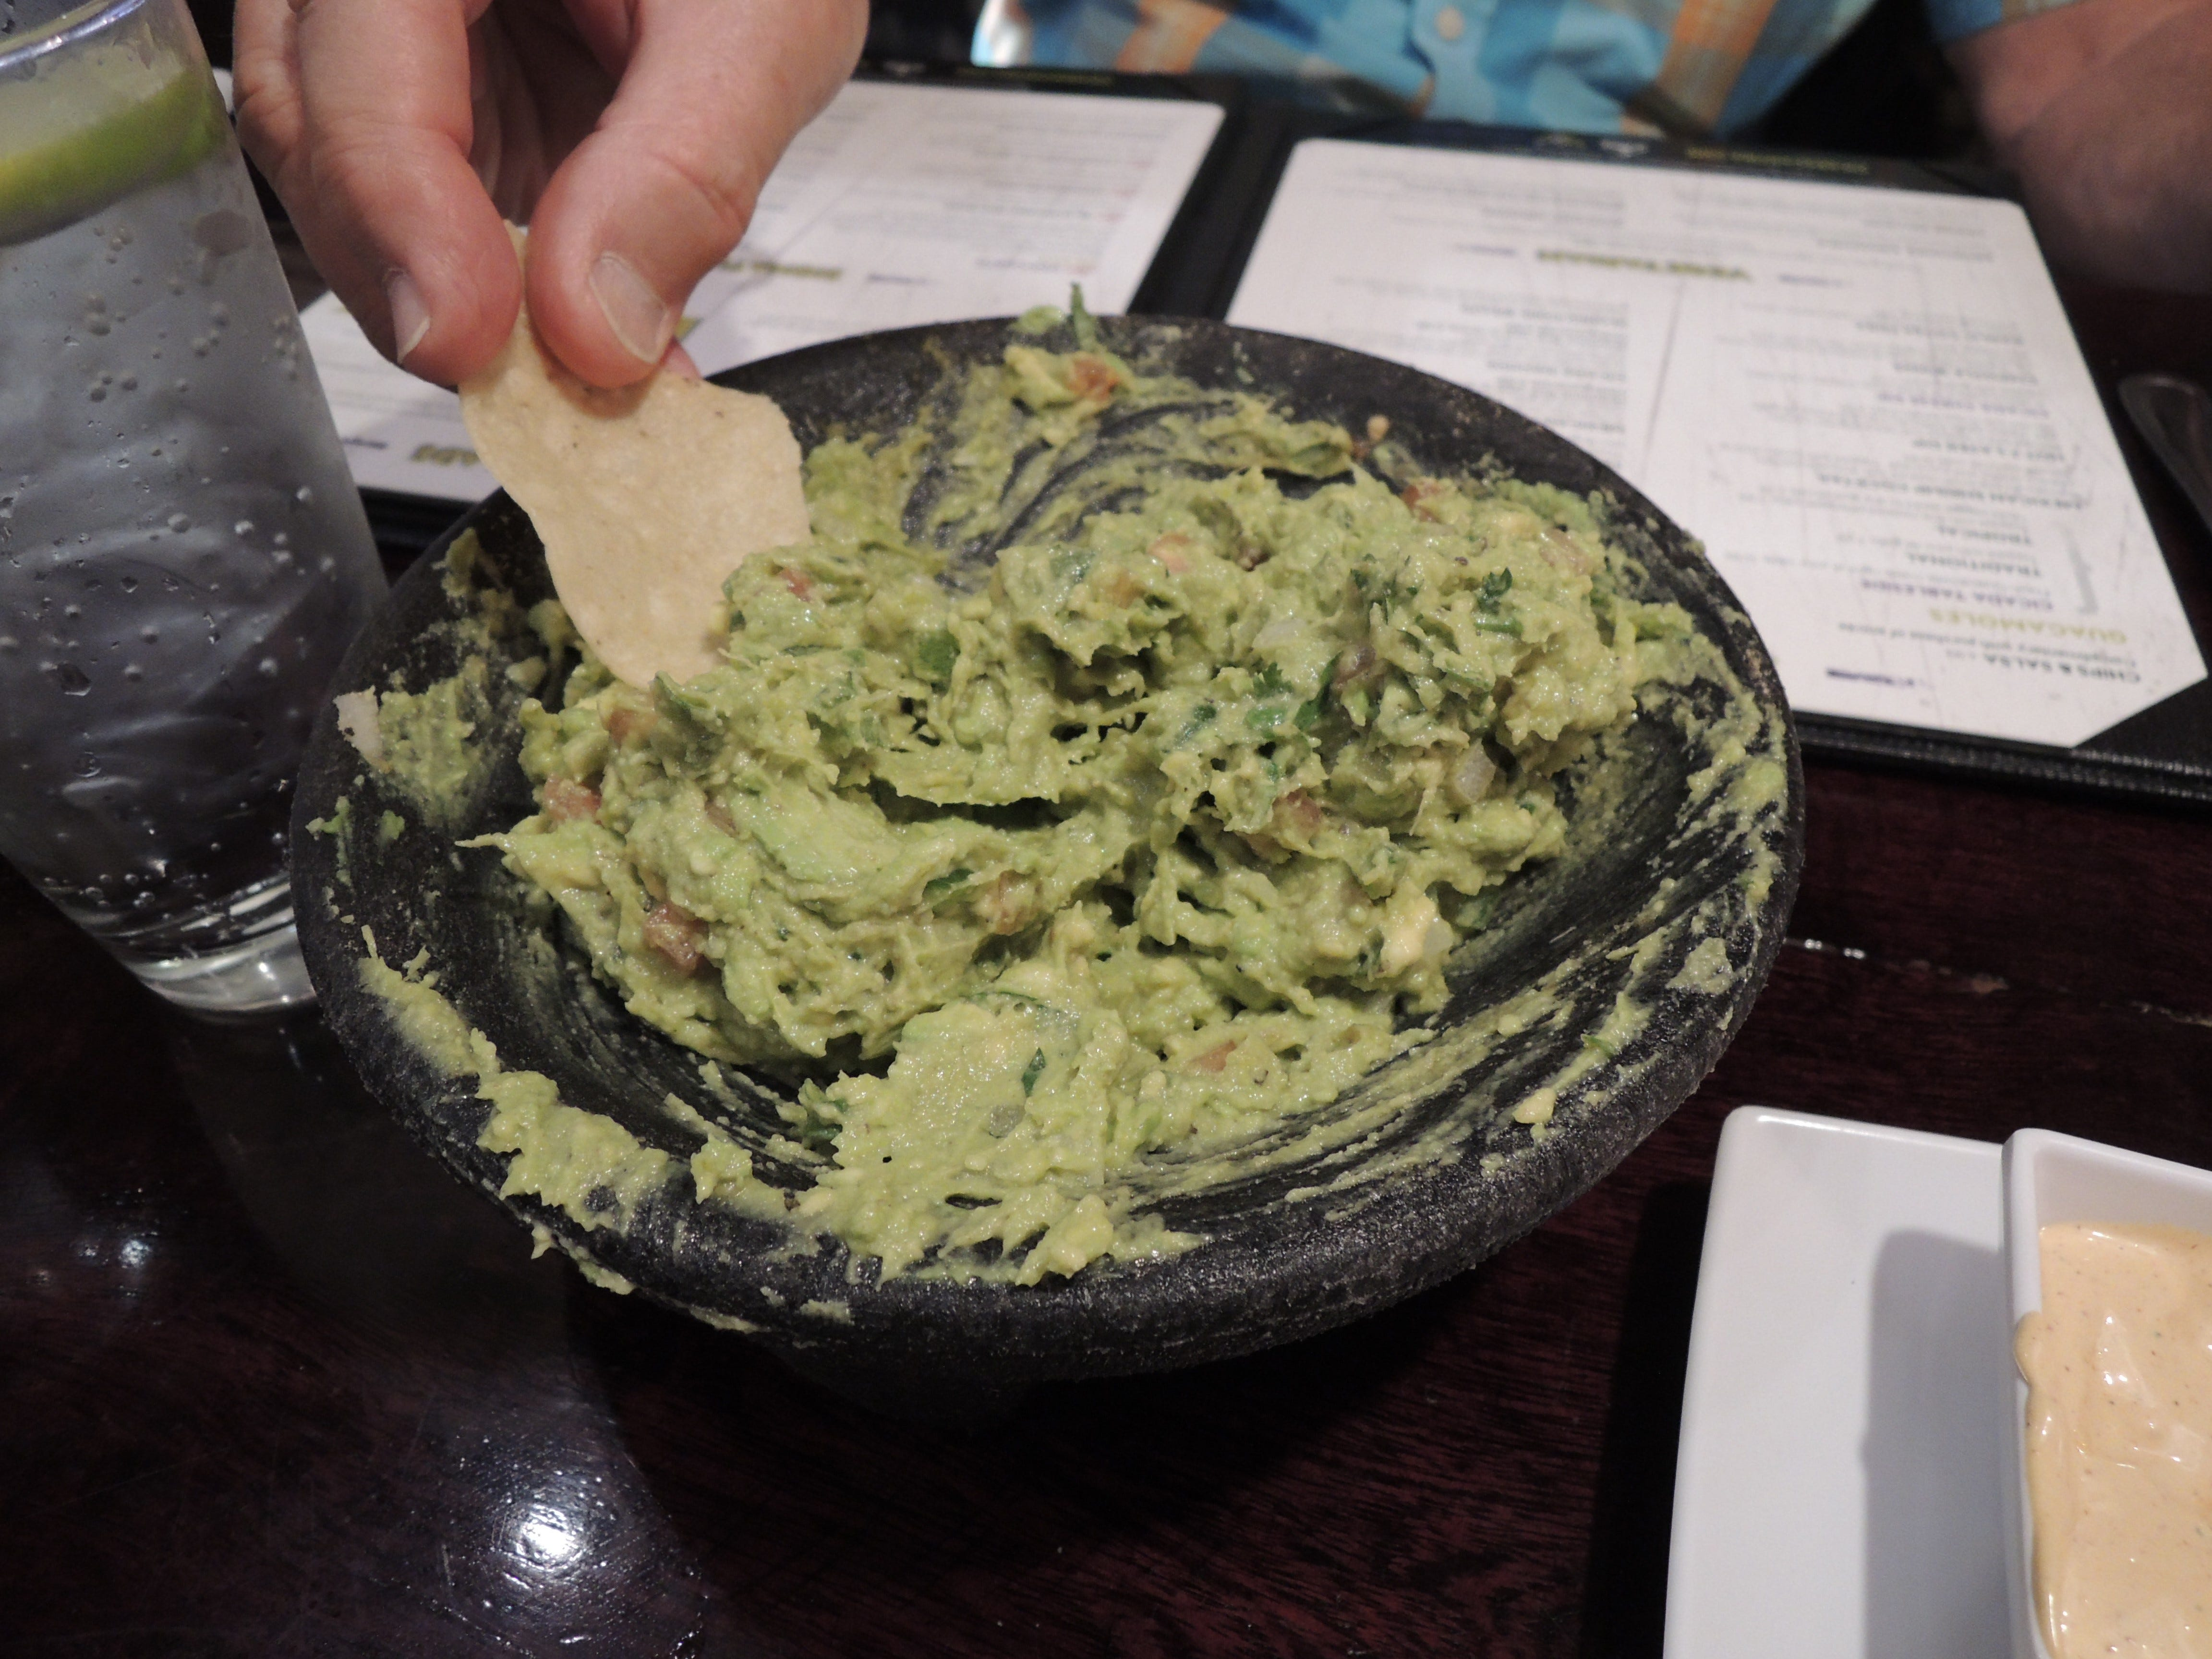 At Cicada Cantina in east Redding, a diner enjoys an order of guacamole made at the table.